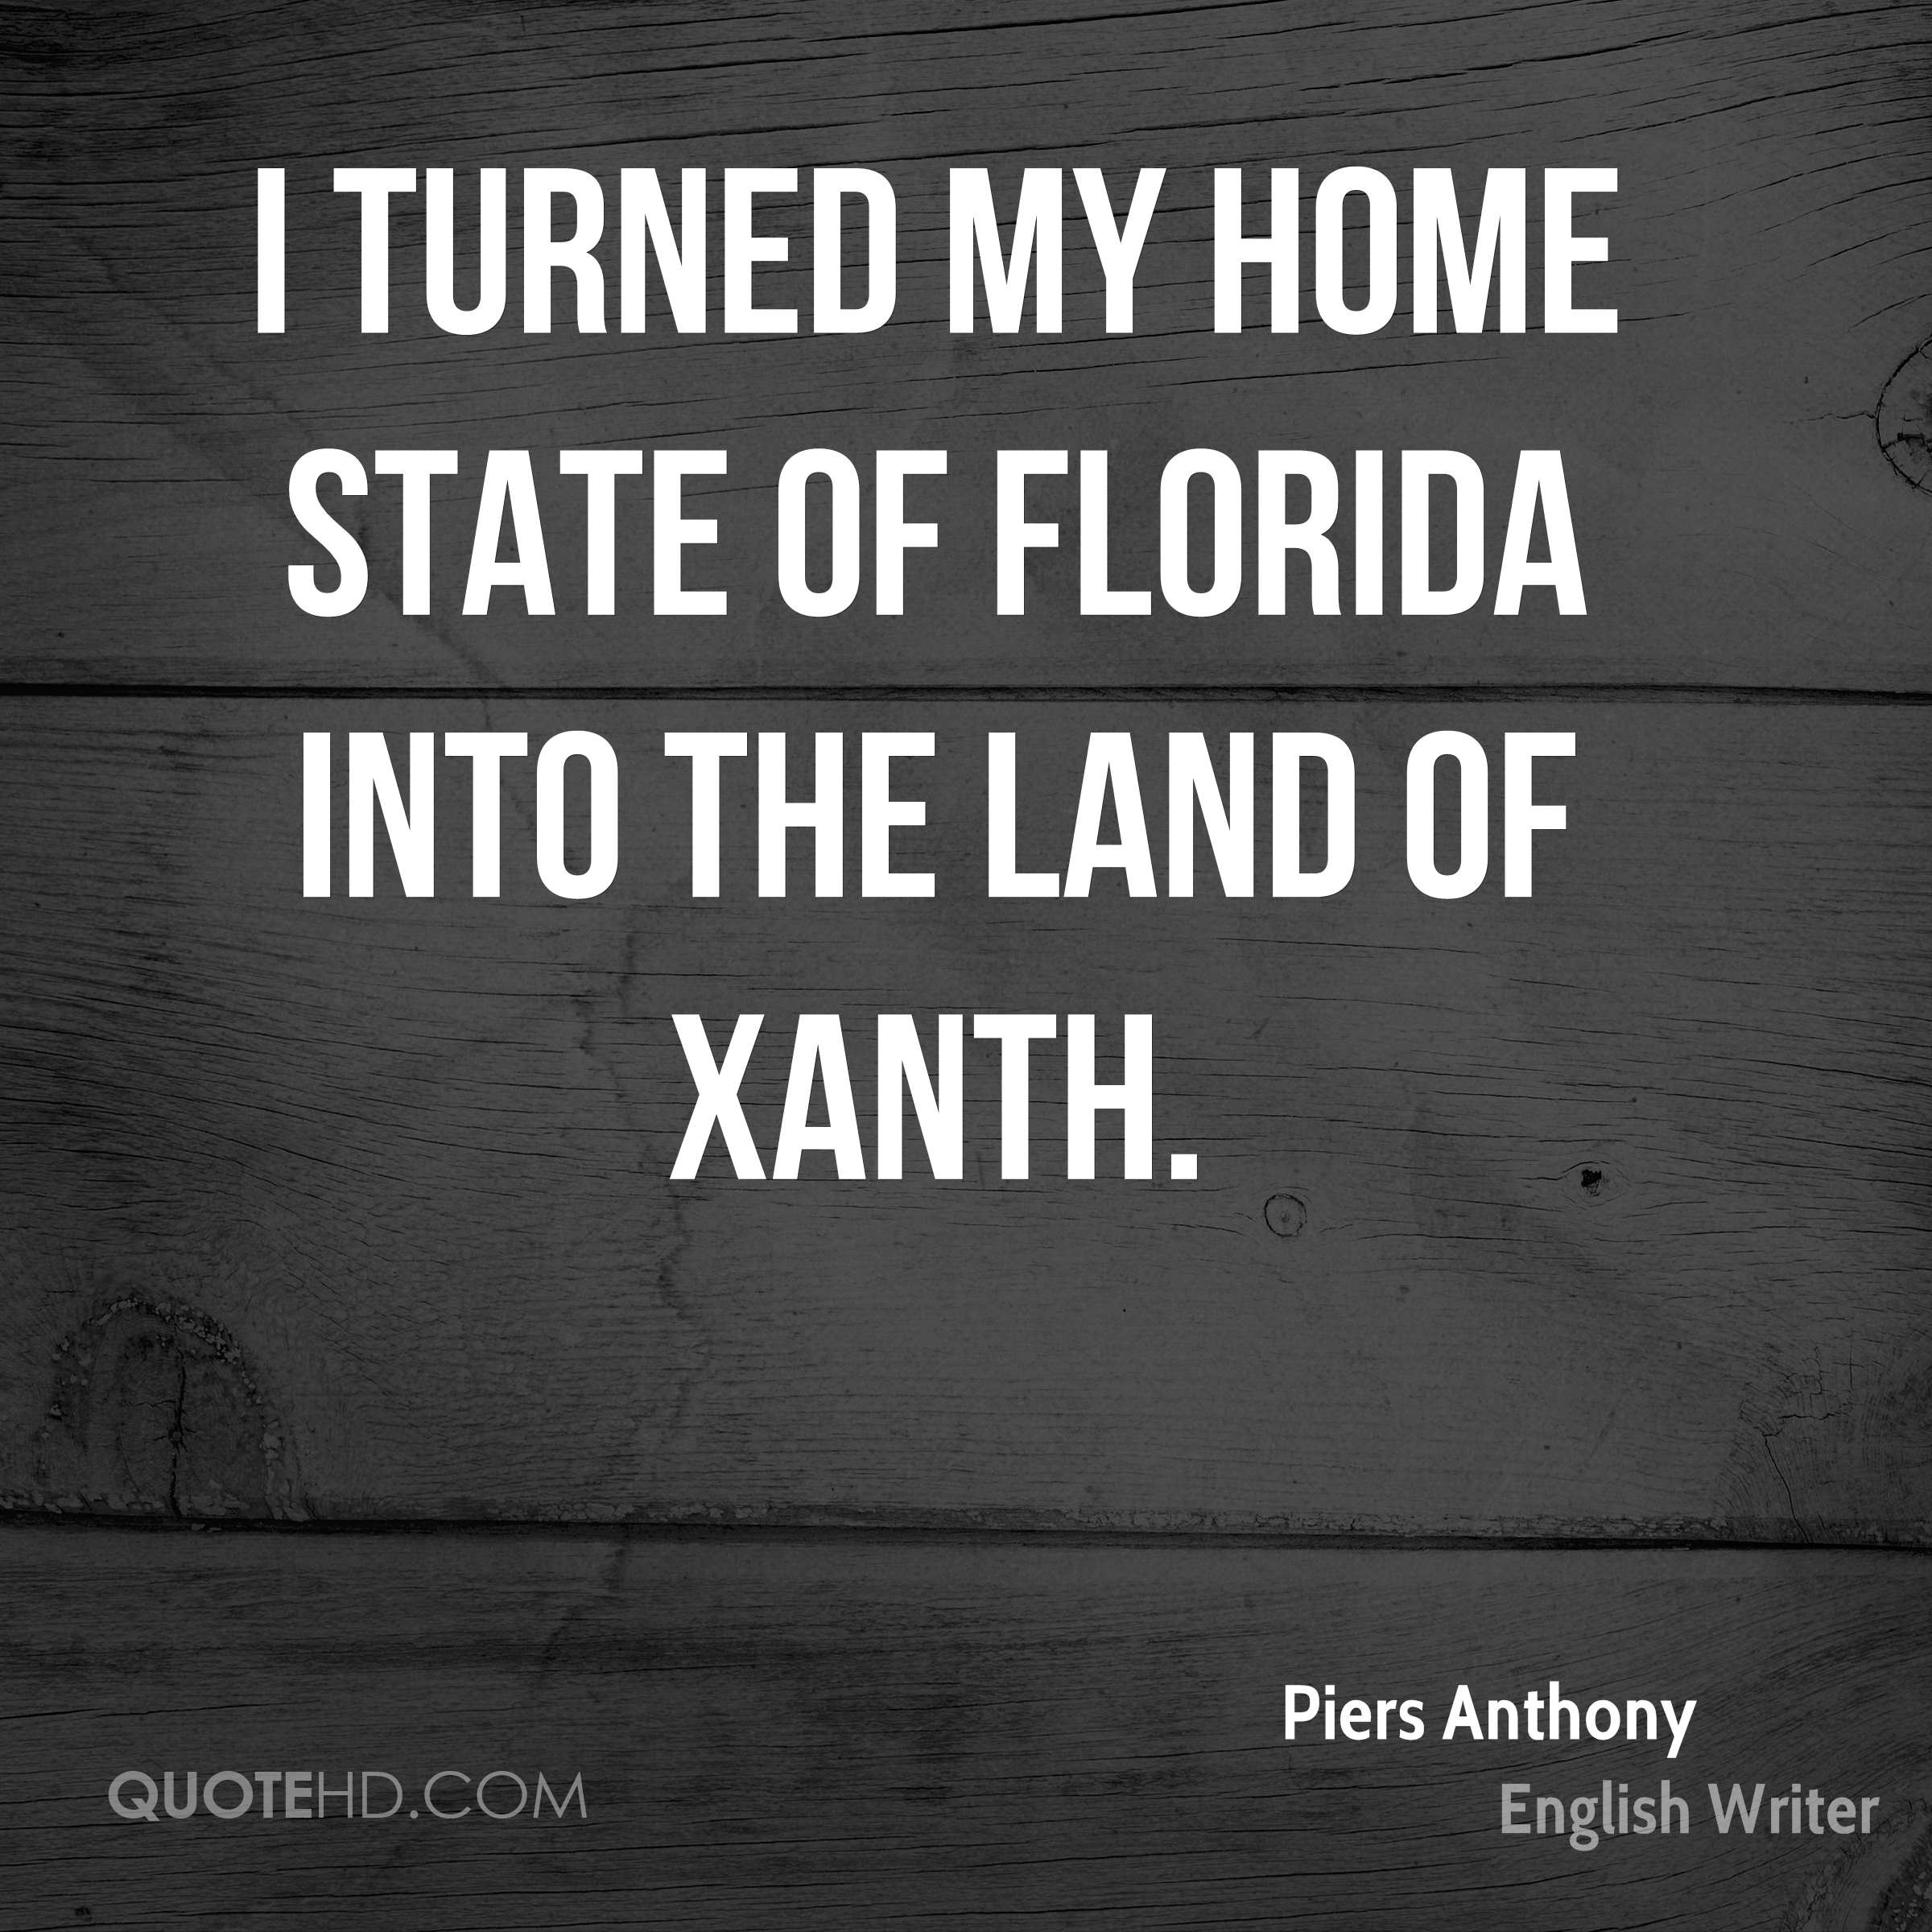 I turned my home state of Florida into the Land of Xanth.